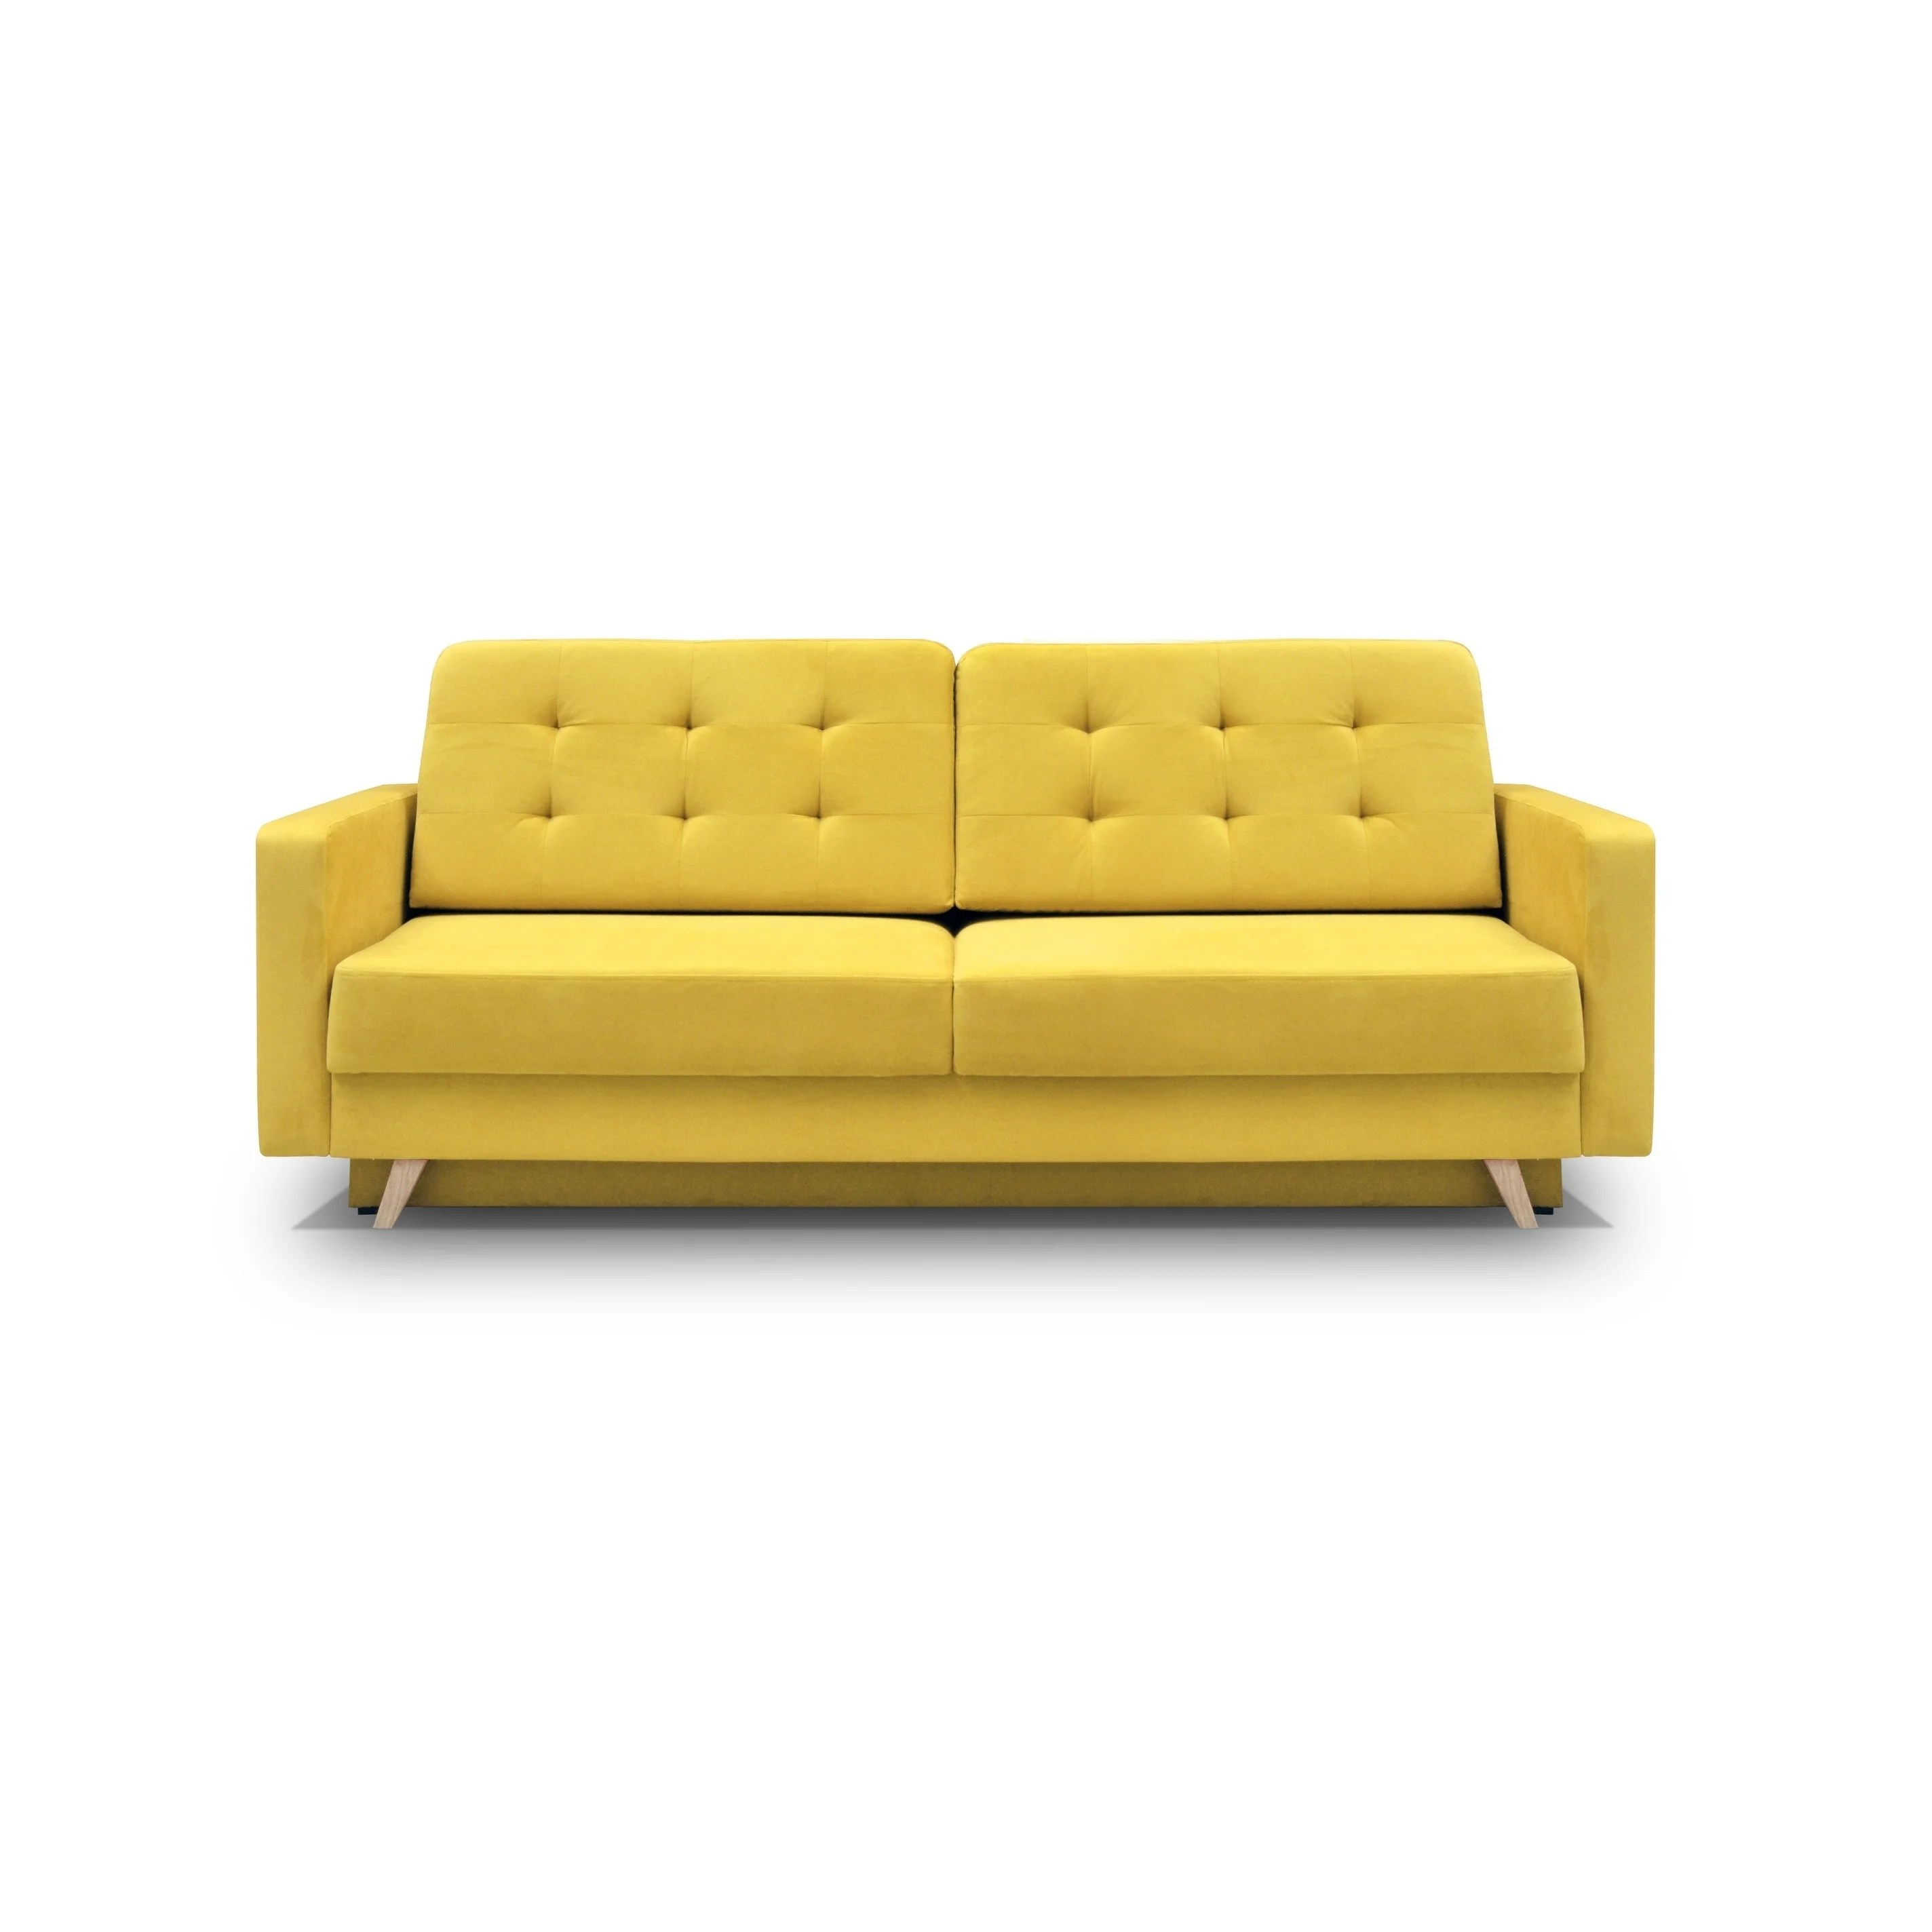 vegas futon sectional sofa bed queen sleeper with storage murphy wall uk yellow single folding pictures of for